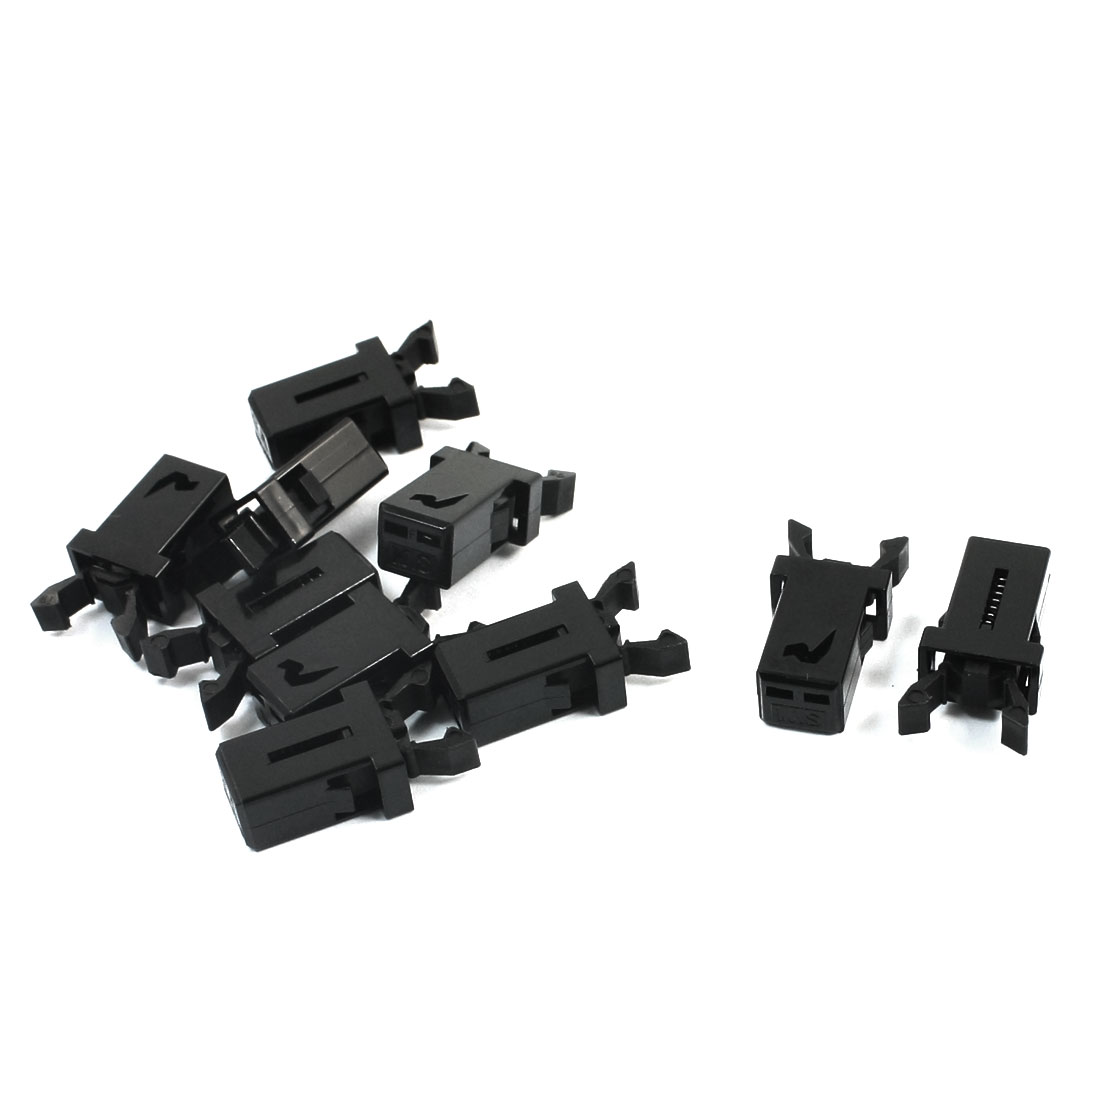 10 Pcs Spring Load Black Plastic Door Lock Toch Button Switch for RC Aircraft Airplane Model